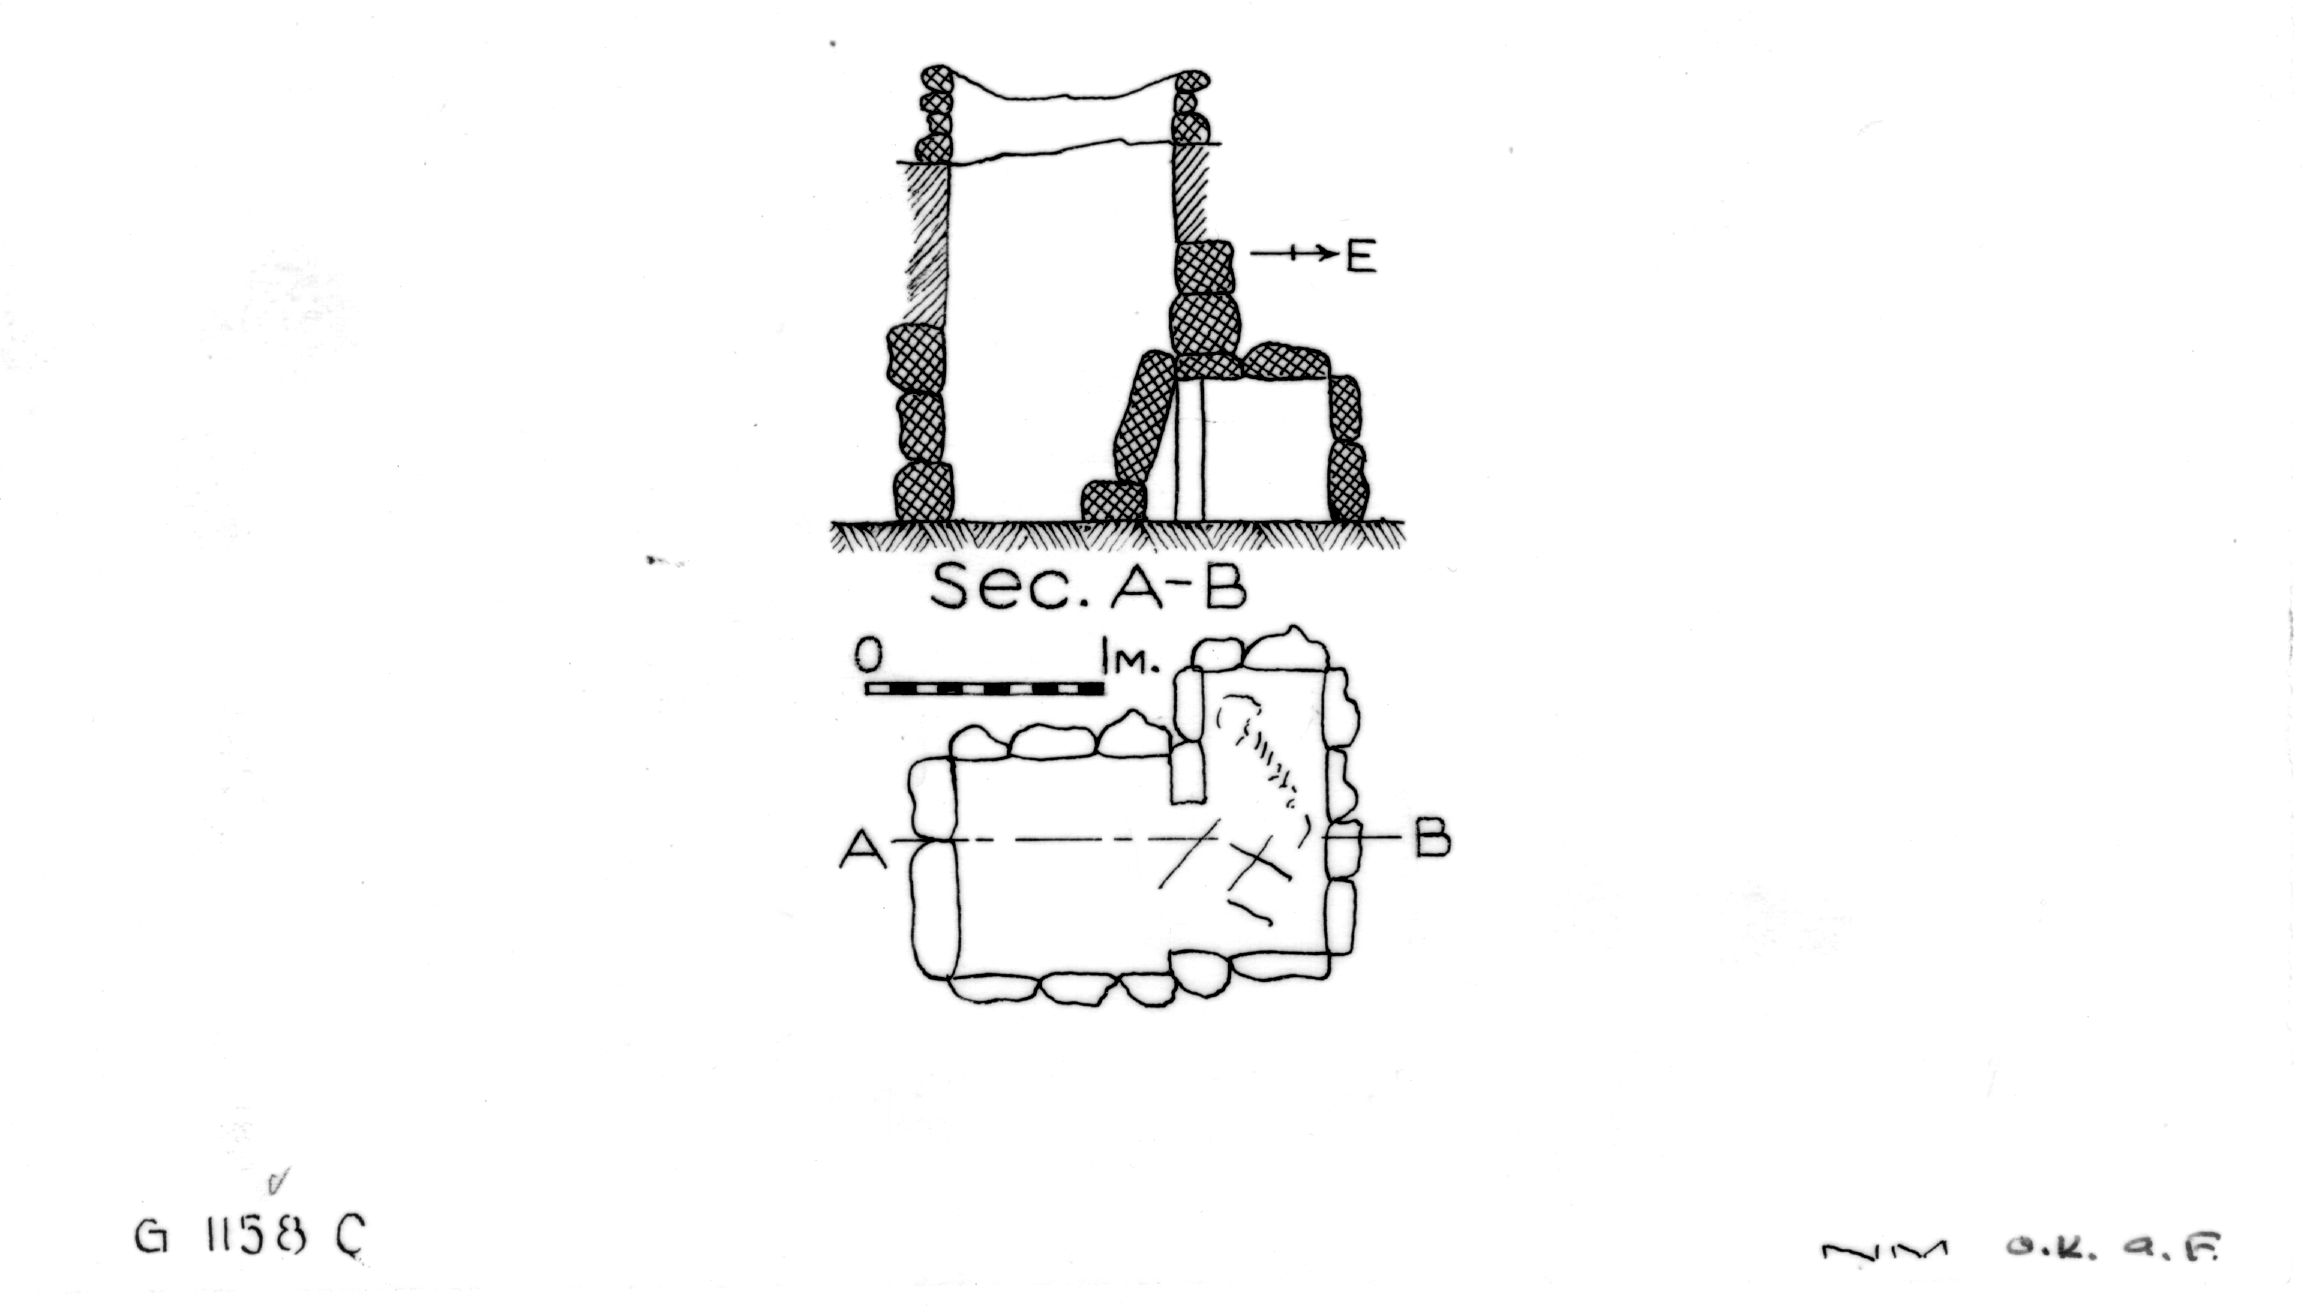 Maps and plans: G 1158, Shaft C